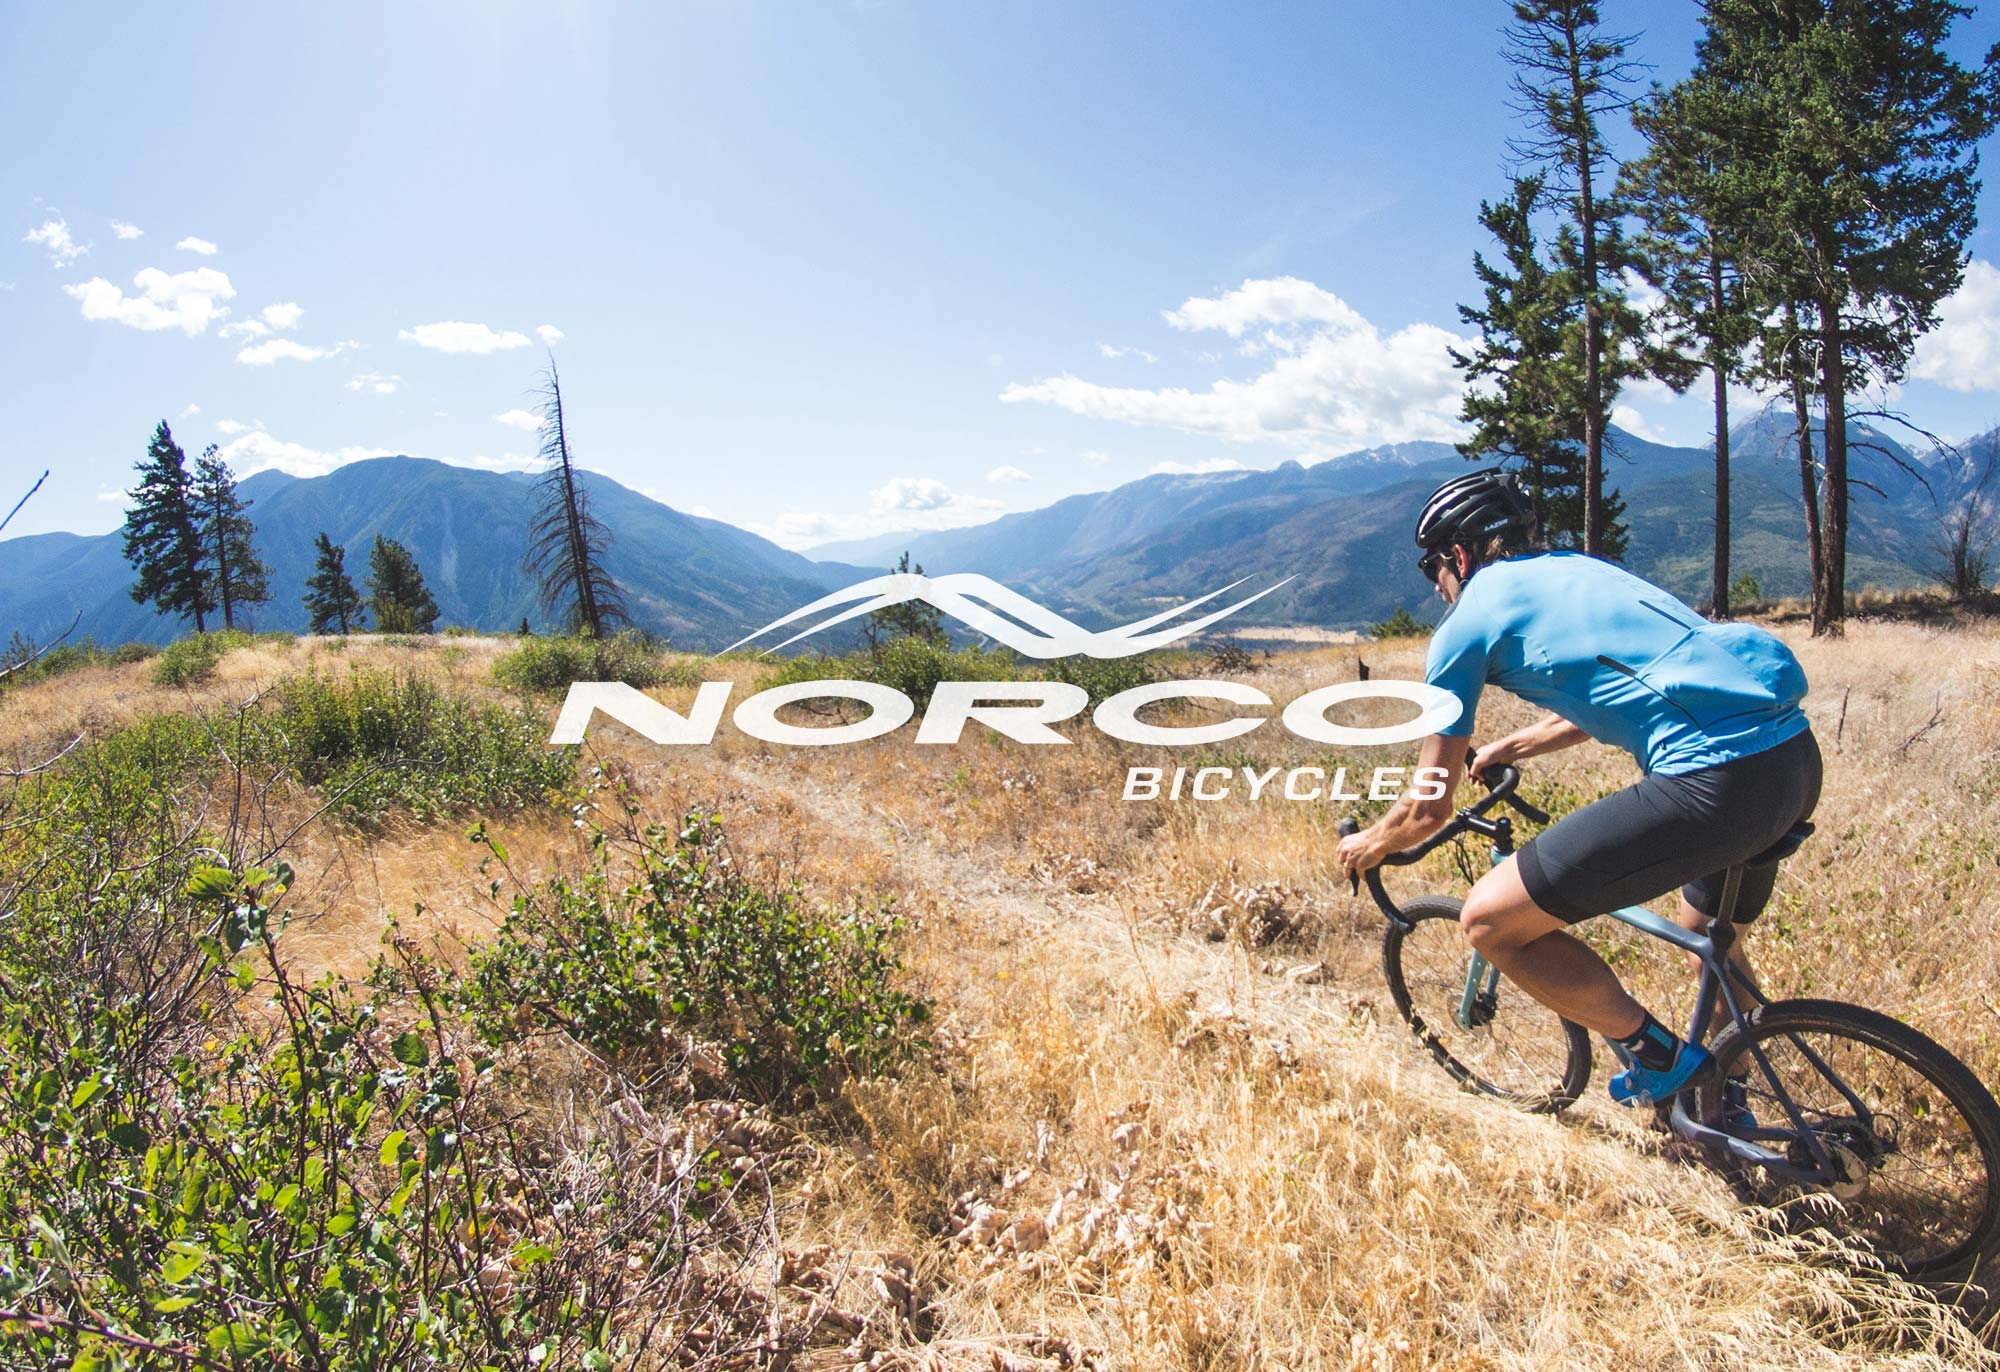 RideSolution B2B Norco Bicycles Austria